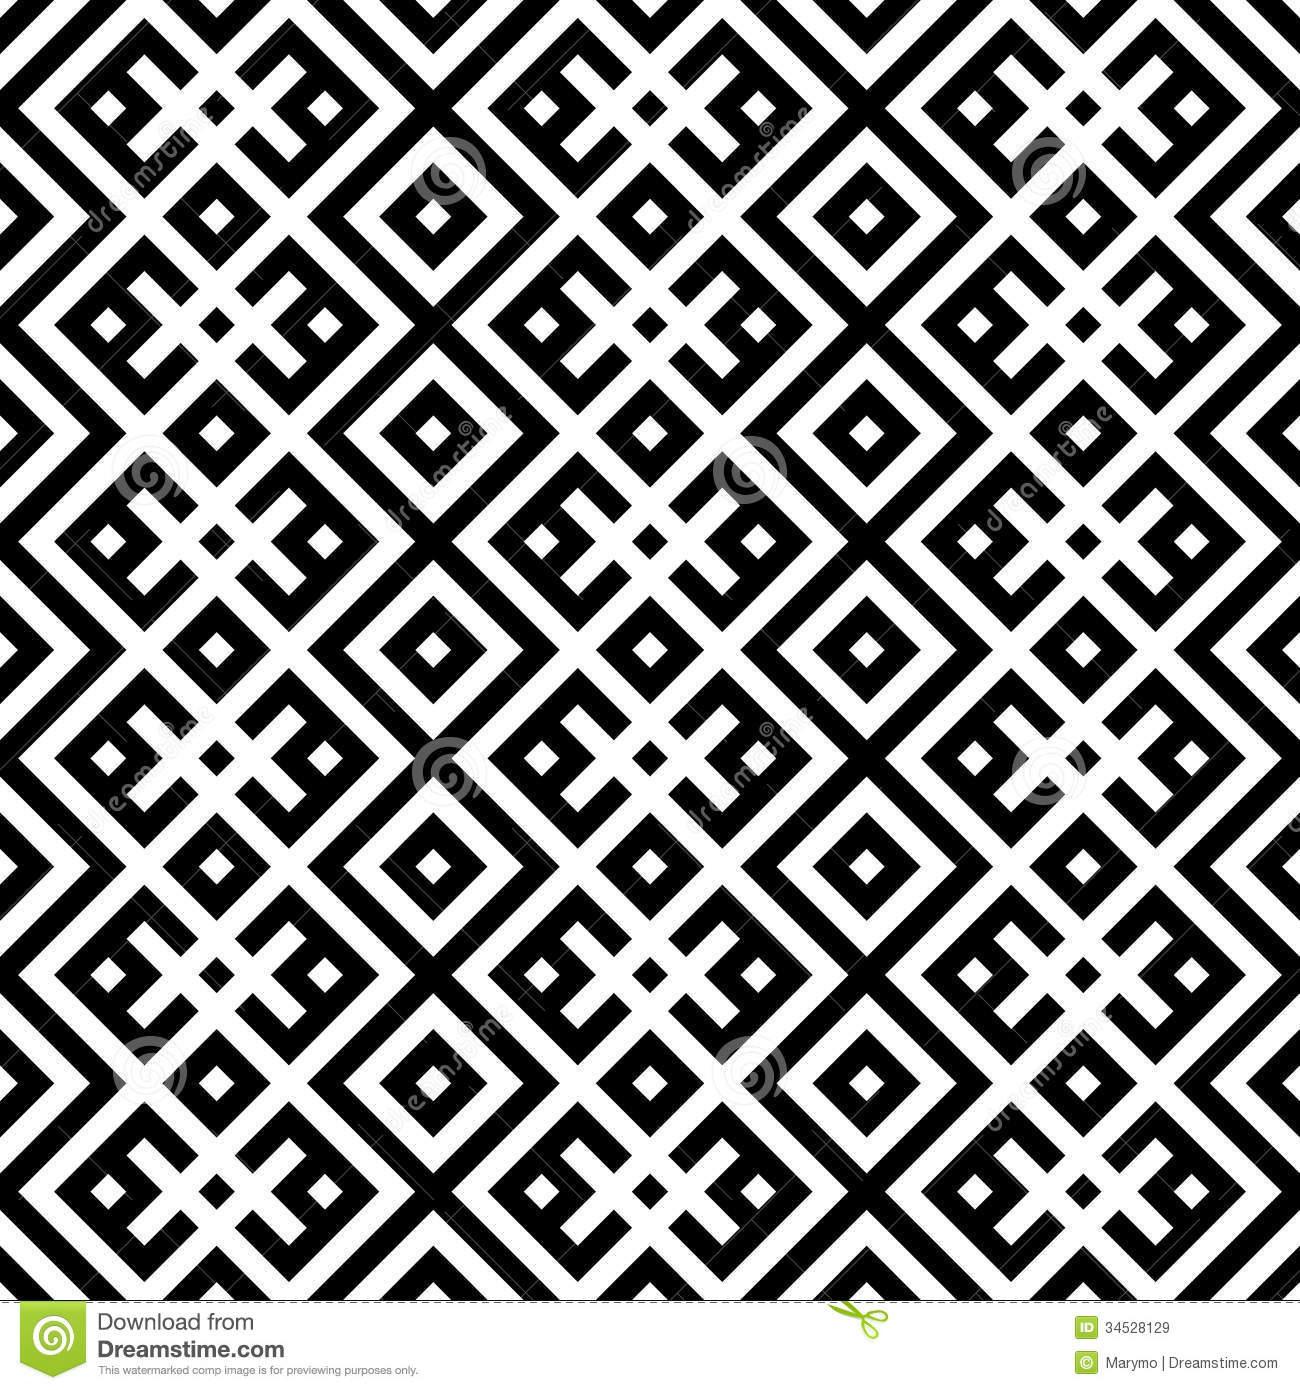 Black And White Checkered Wallpaper Border Widescreen HD Wallpapers 1300x1390